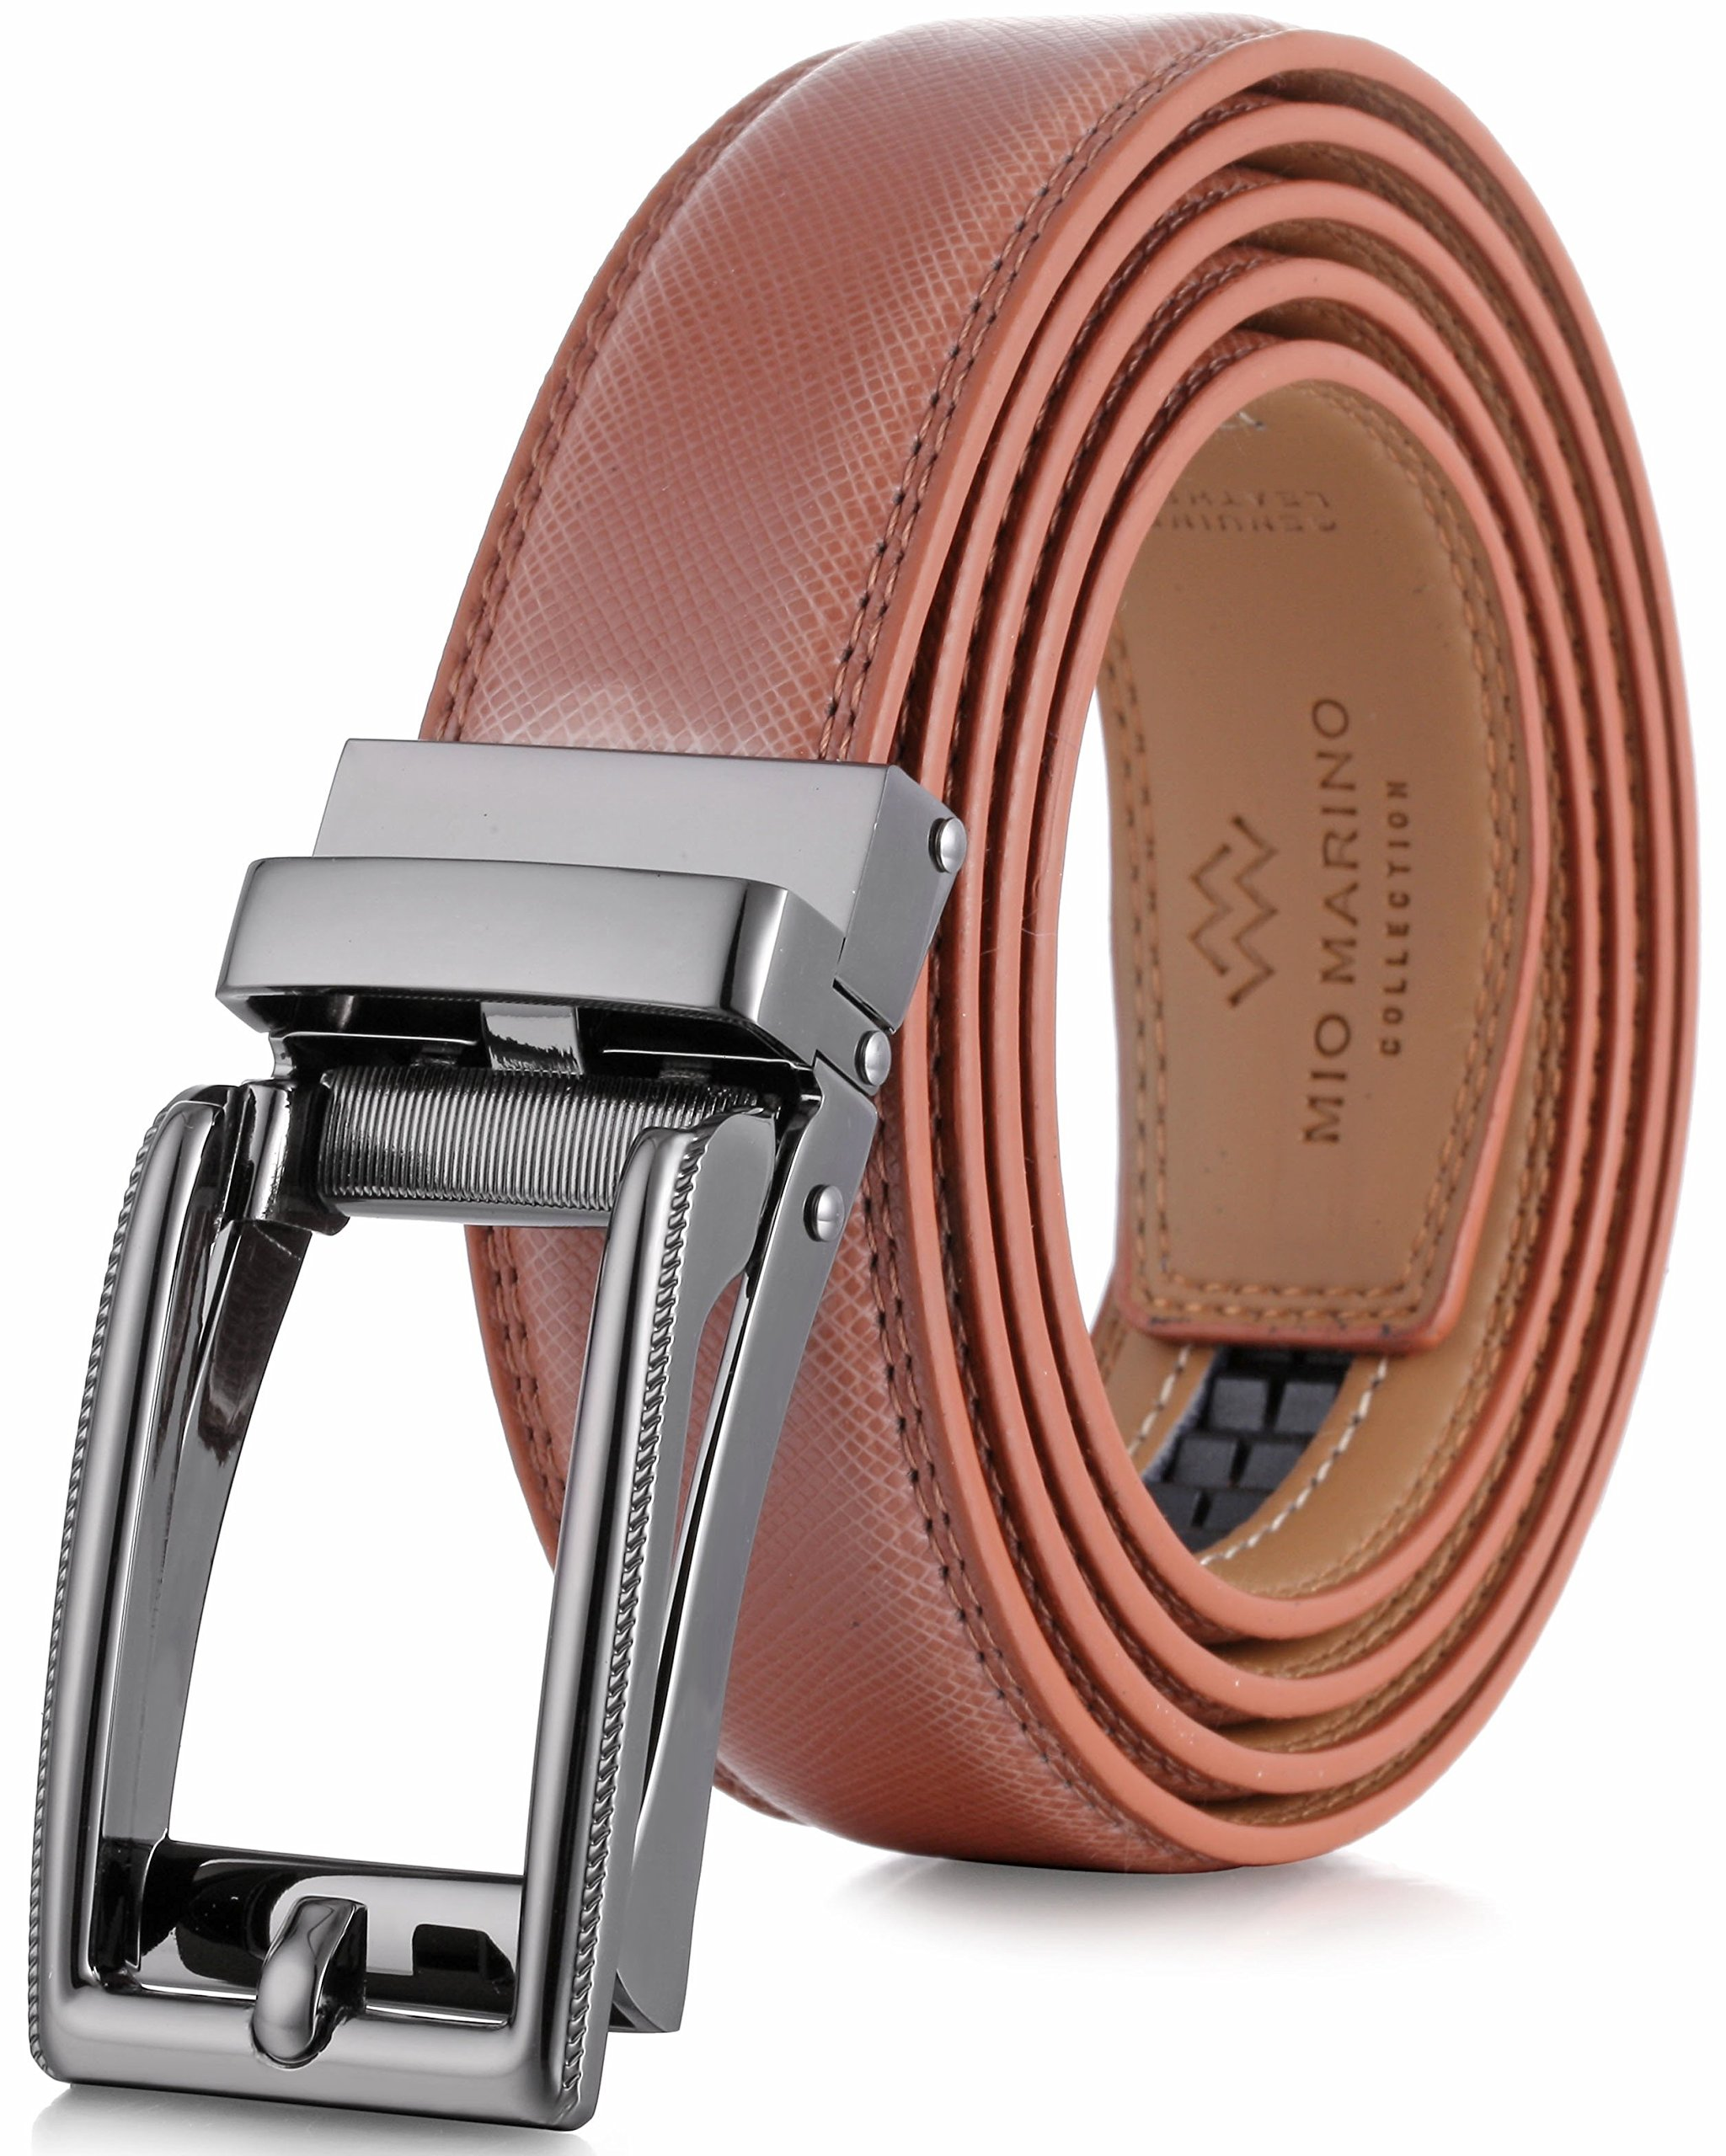 Marino Men's Genuine Leather Ratchet Dress Belt with Open Linxx Buckle, Enclosed in an Elegant Gift Box - Light Tan - Style 70 - Custom: Up to 44'' Waist